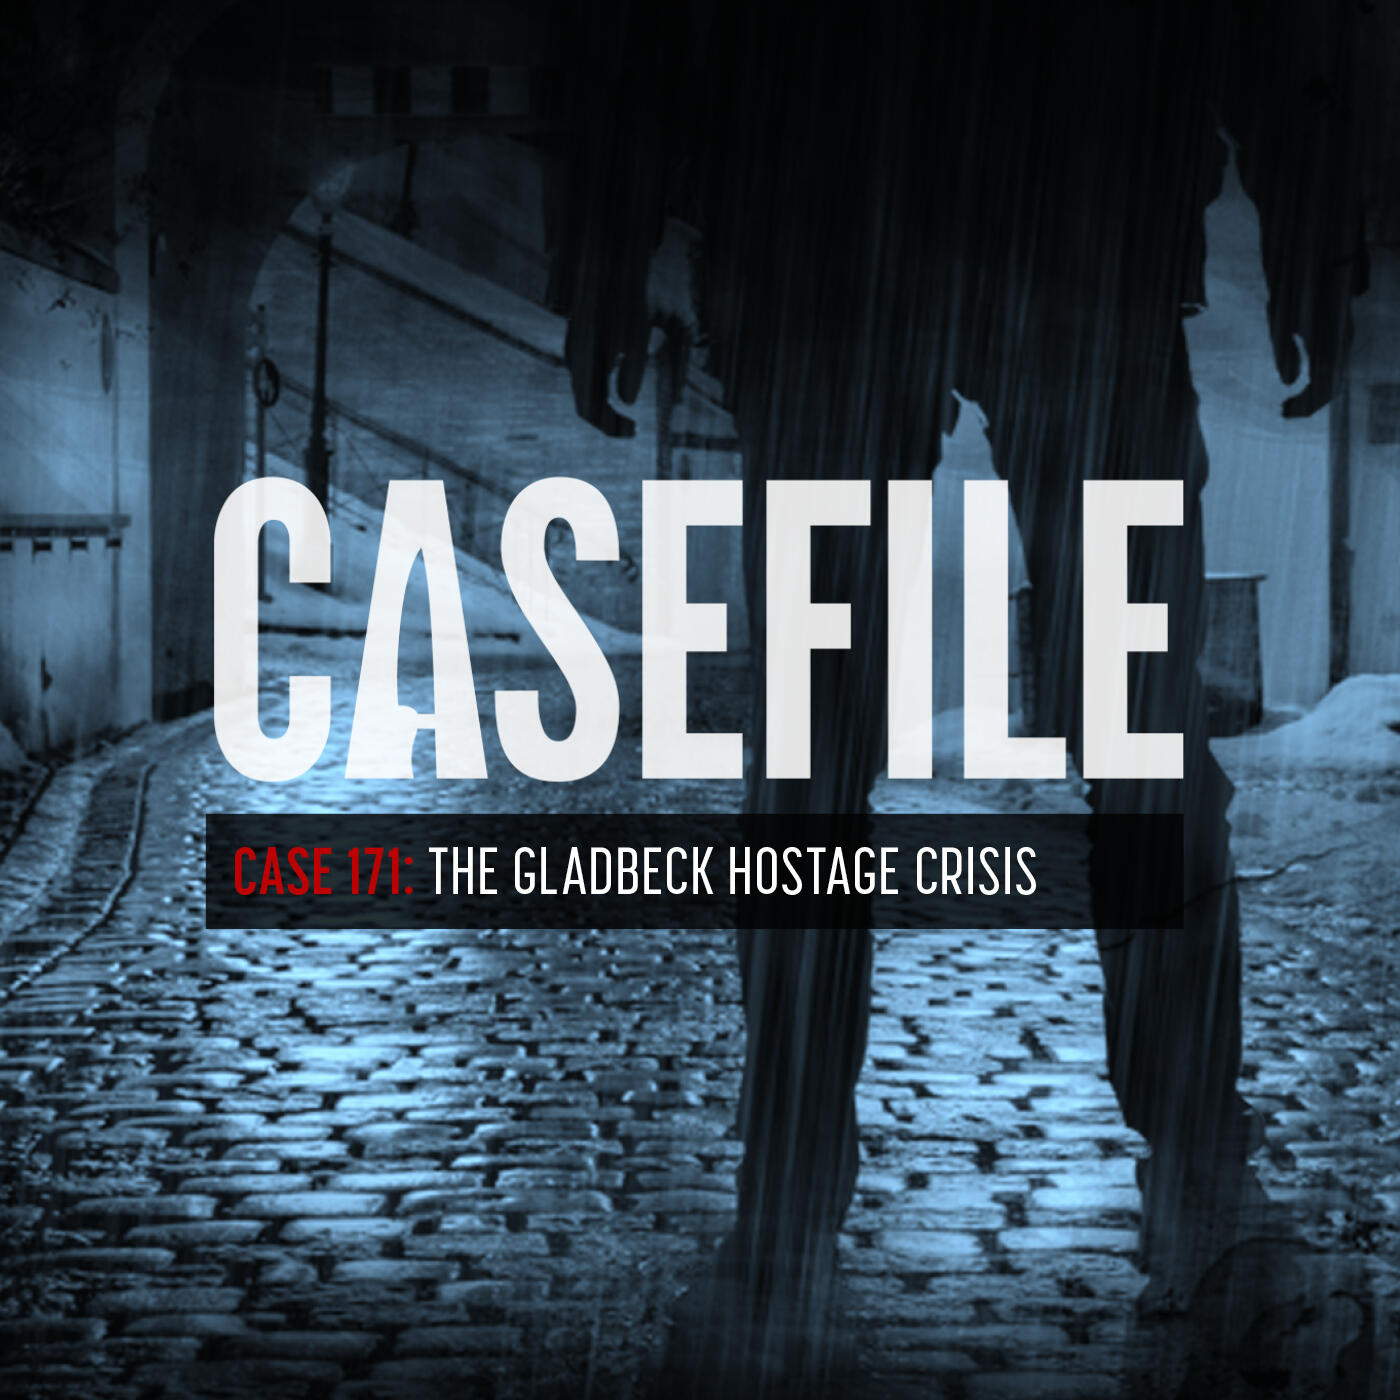 Case 171: The Gladbeck Hostage Crisis